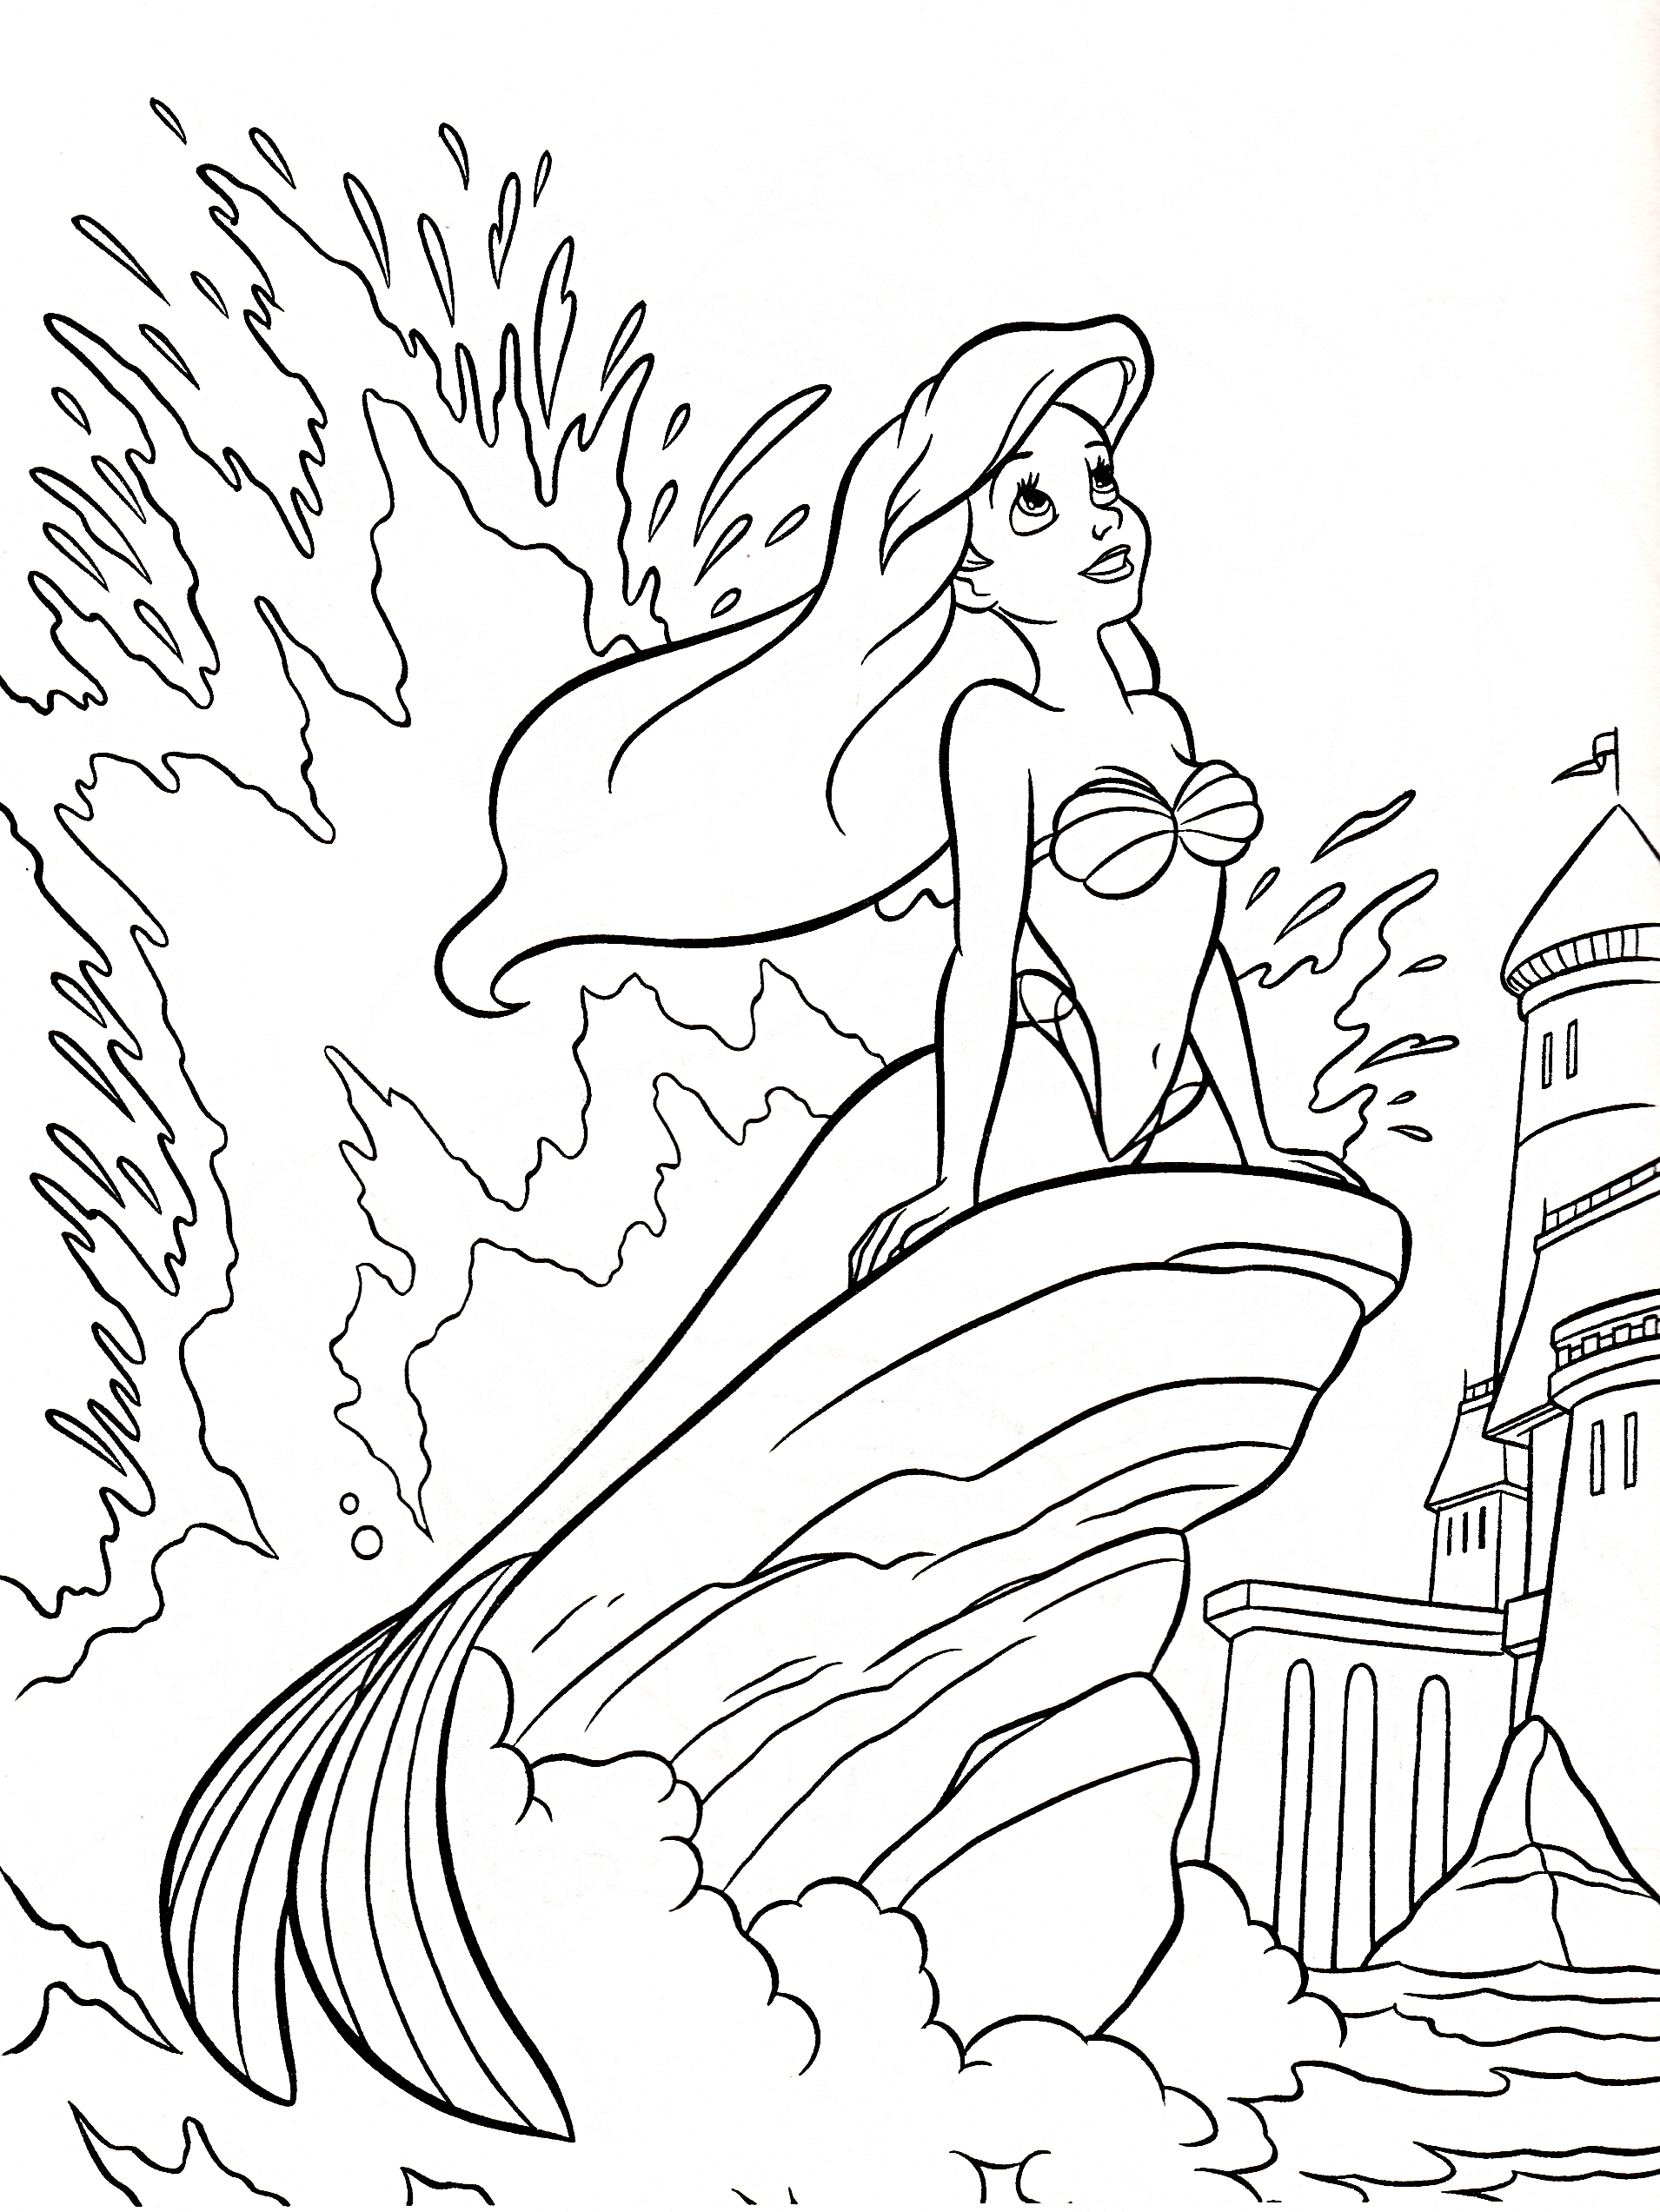 Walt Disney World Coloring Pages Gallery 7k - Free Download